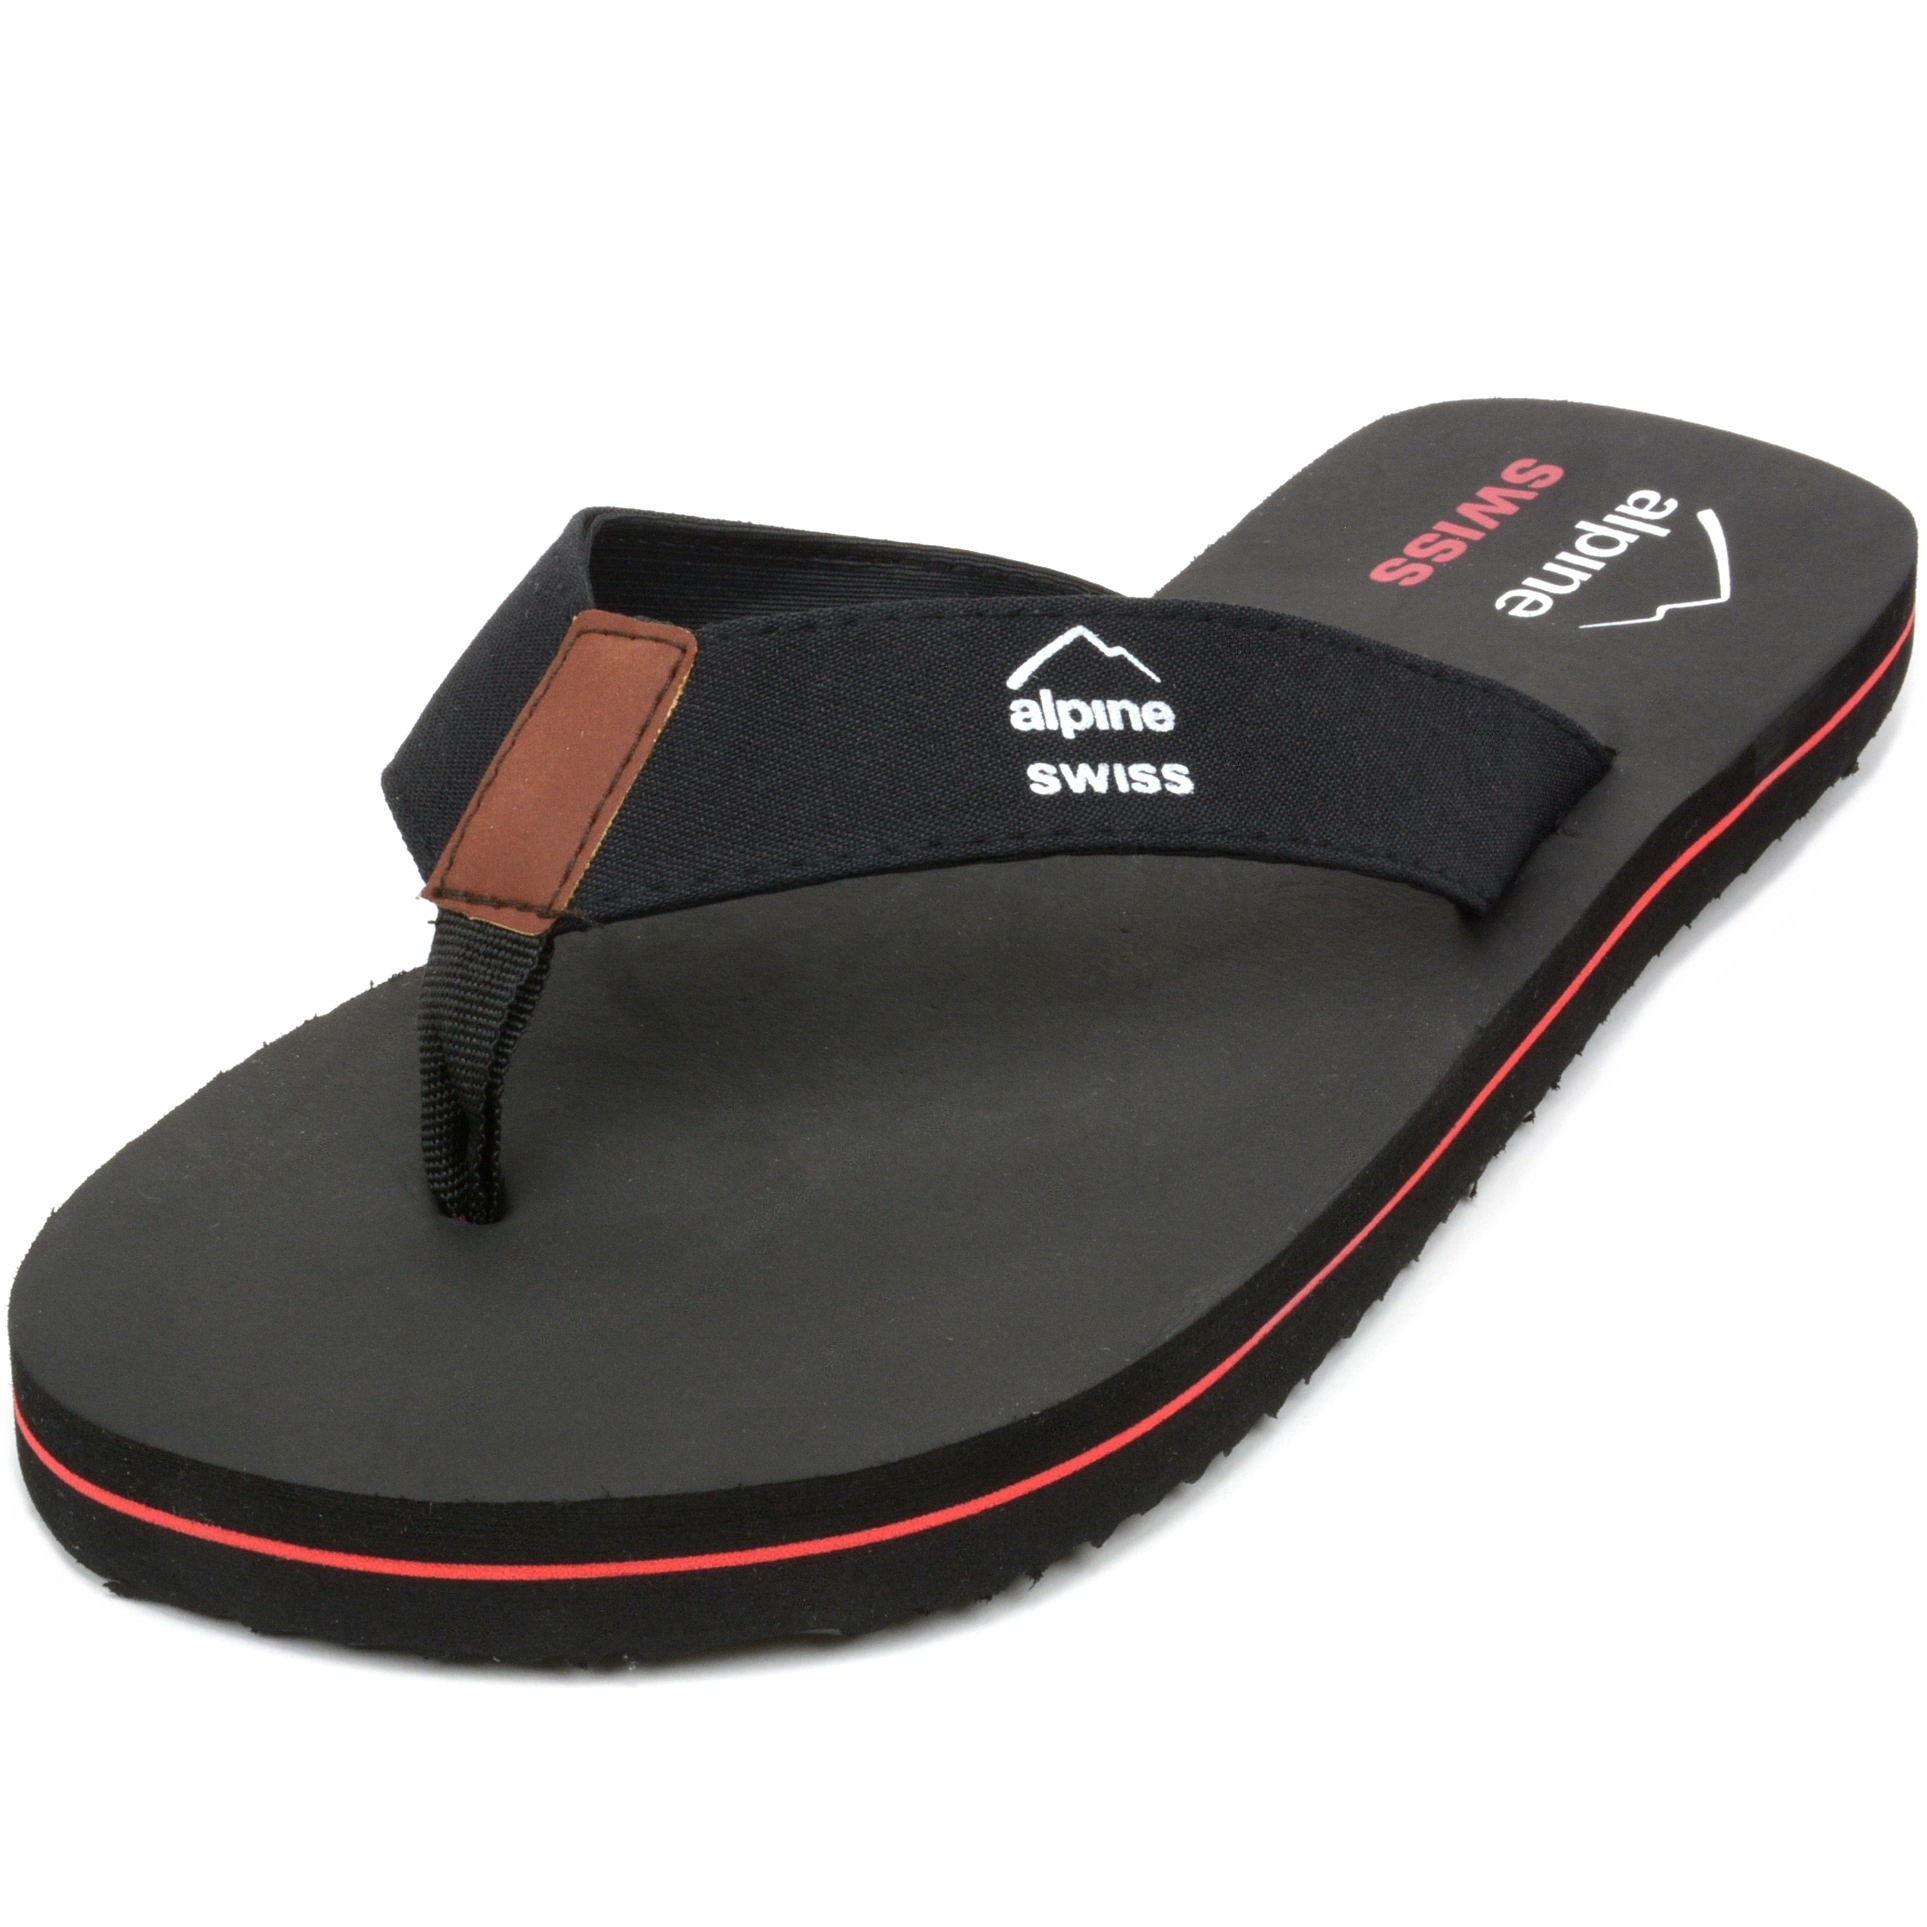 Alpine-Swiss-Mens-Flip-Flops-Beach-Sandals-Lightweight-EVA-Sole-Comfort-Thongs thumbnail 15